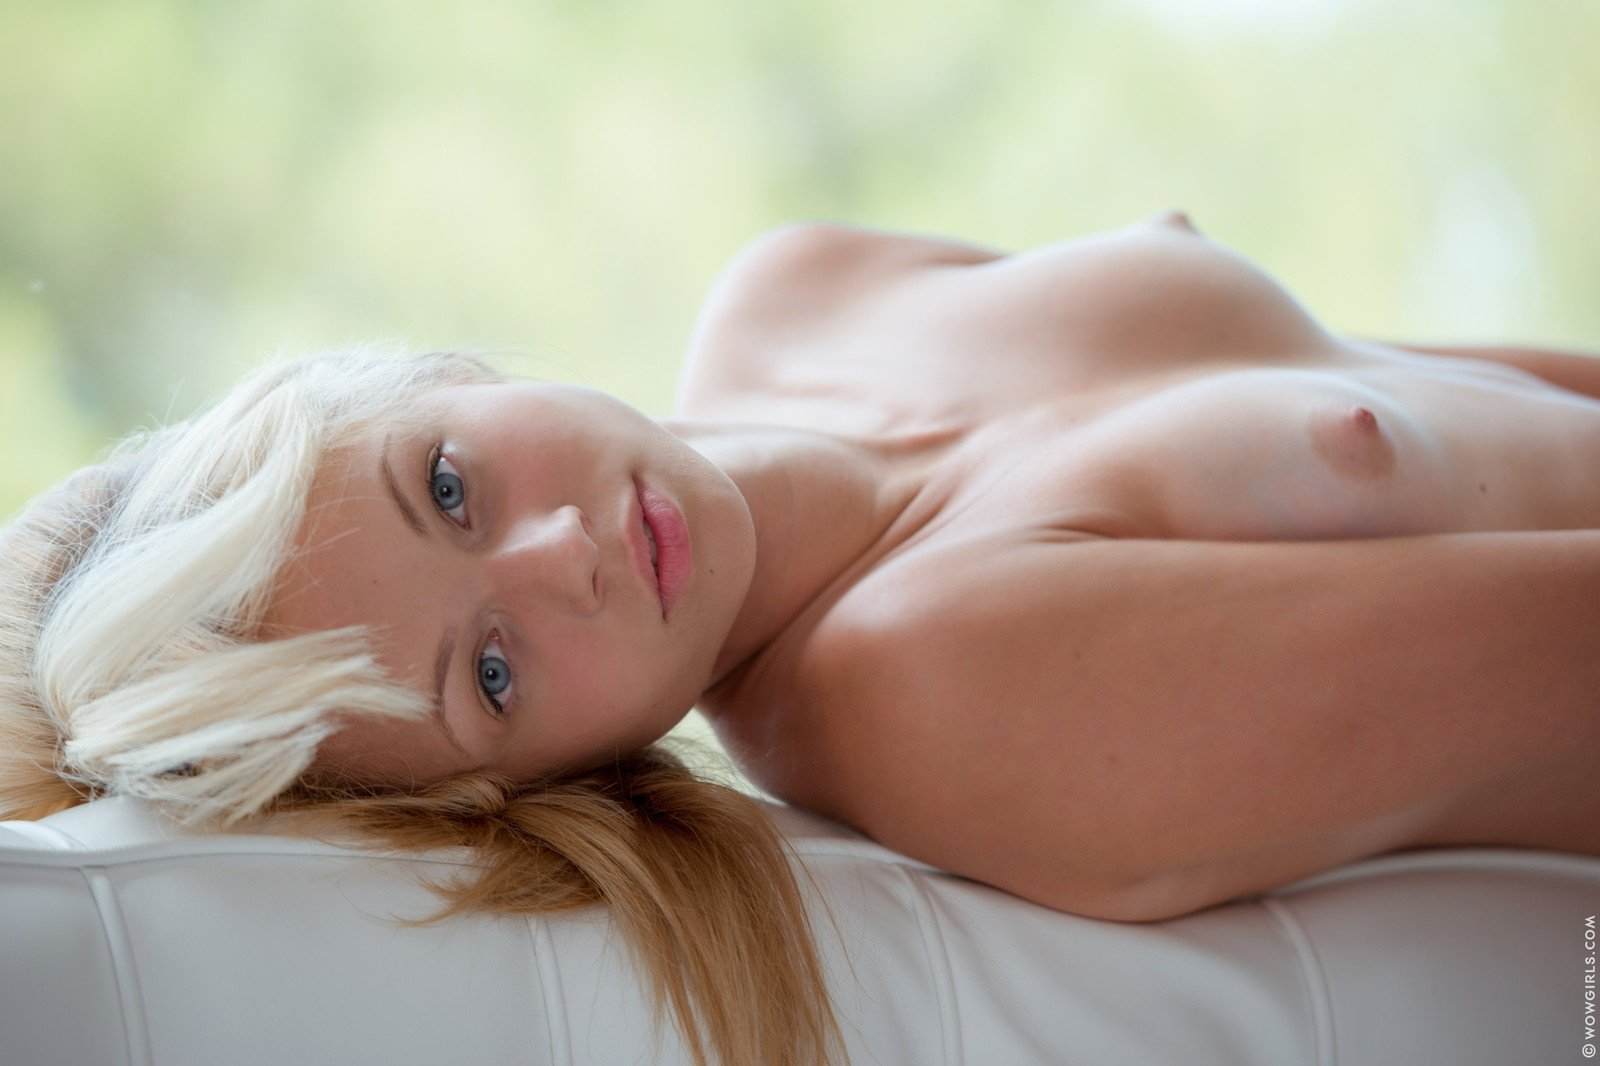 blonde-blue-eyed-babe-topless